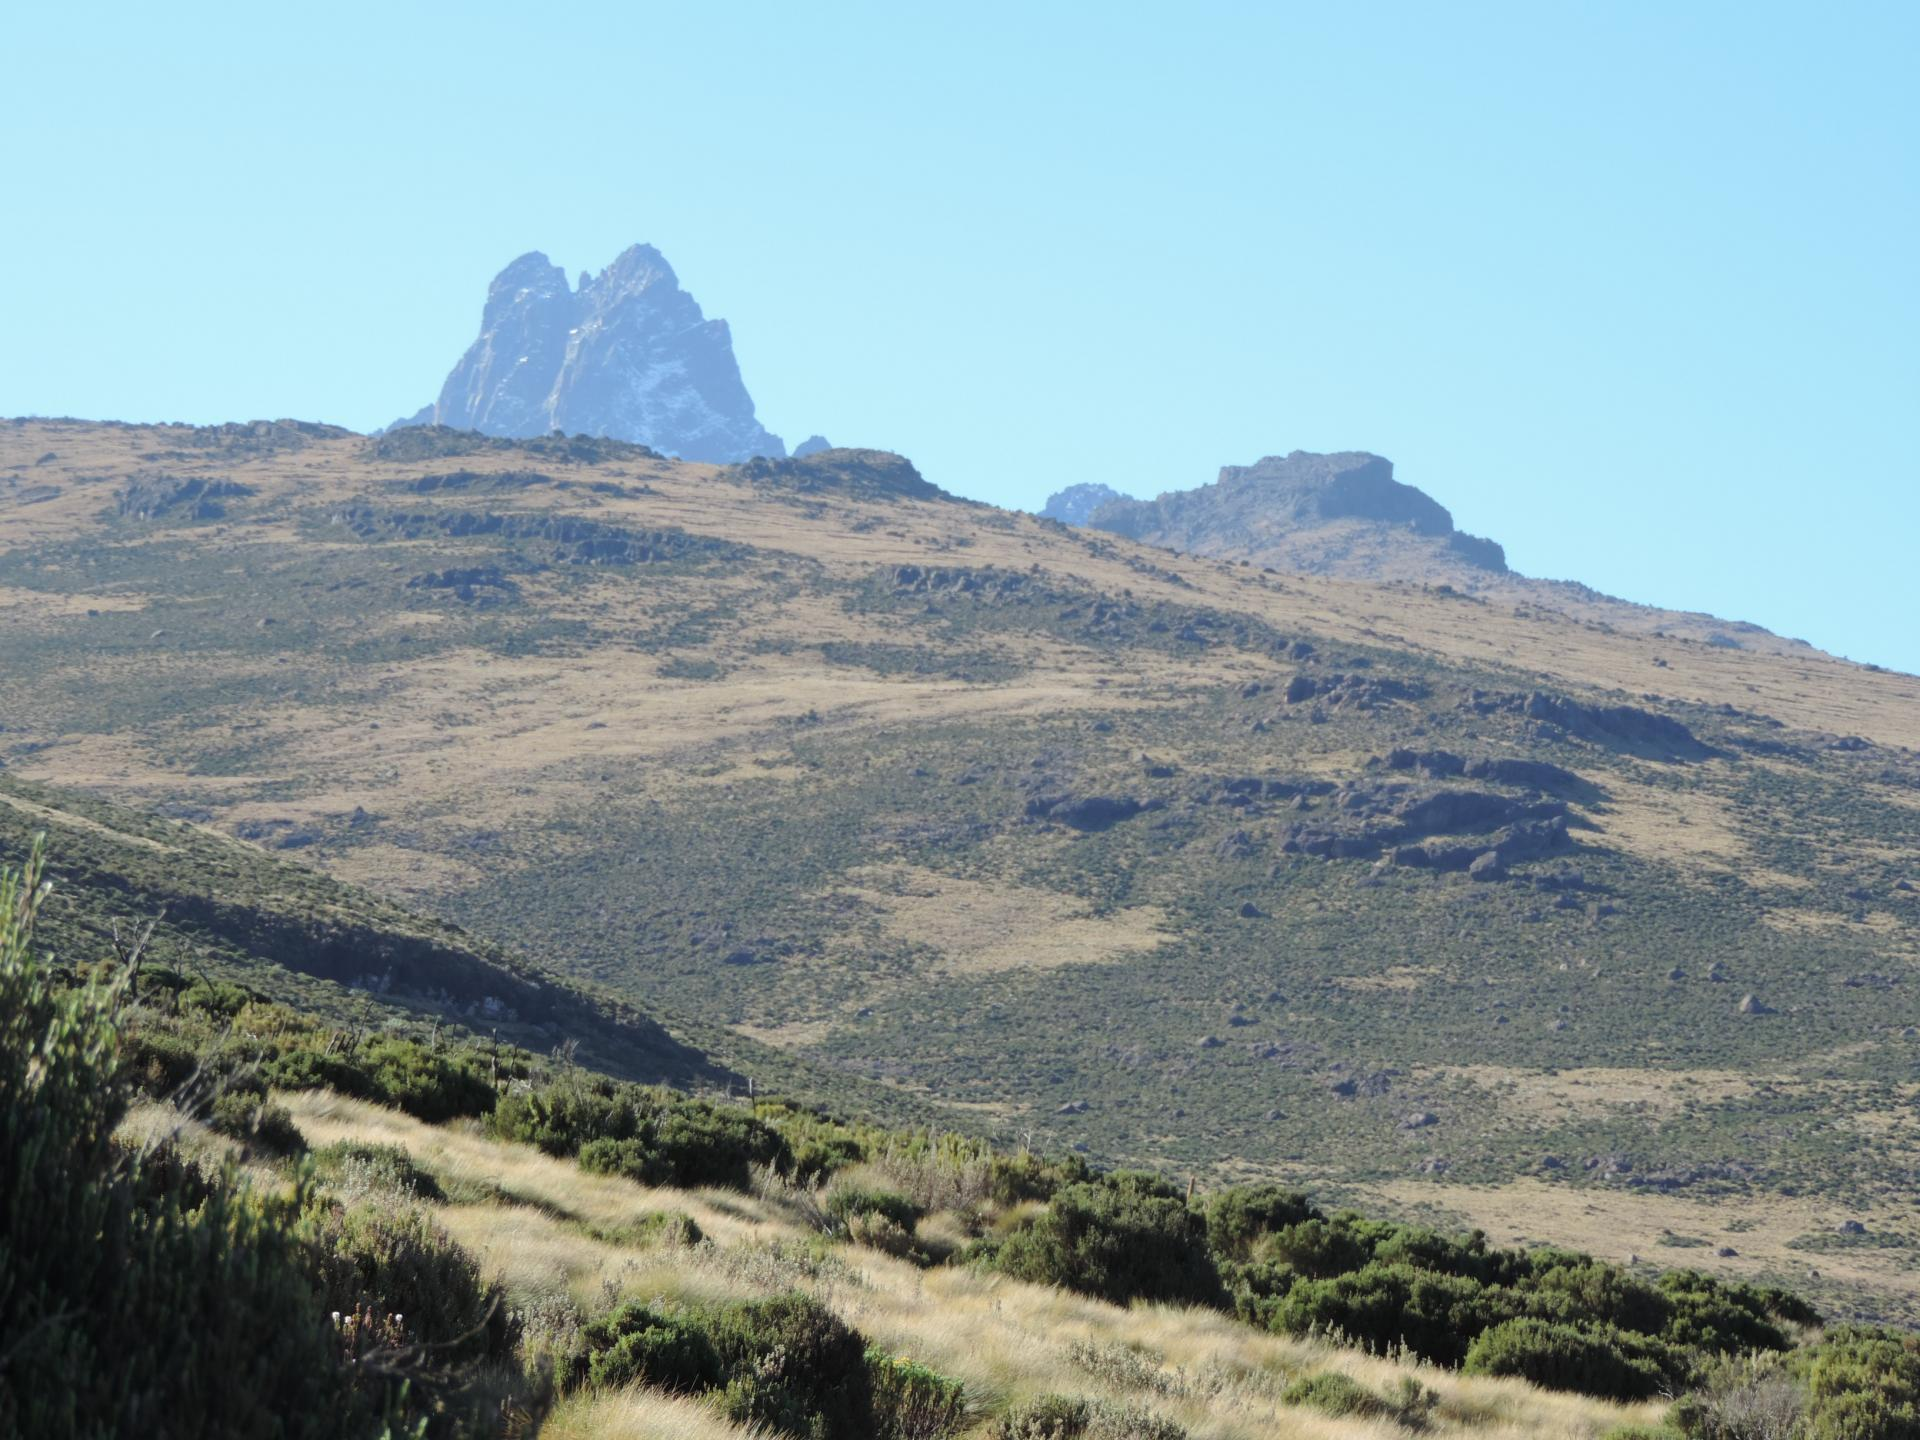 Mt Kenya Summit,mountain adventures, budget travel, trekking, hiking, mount kenya safaris, small group adventures, mountain climbing, climbing Kenya mountain,Mountain Kenya